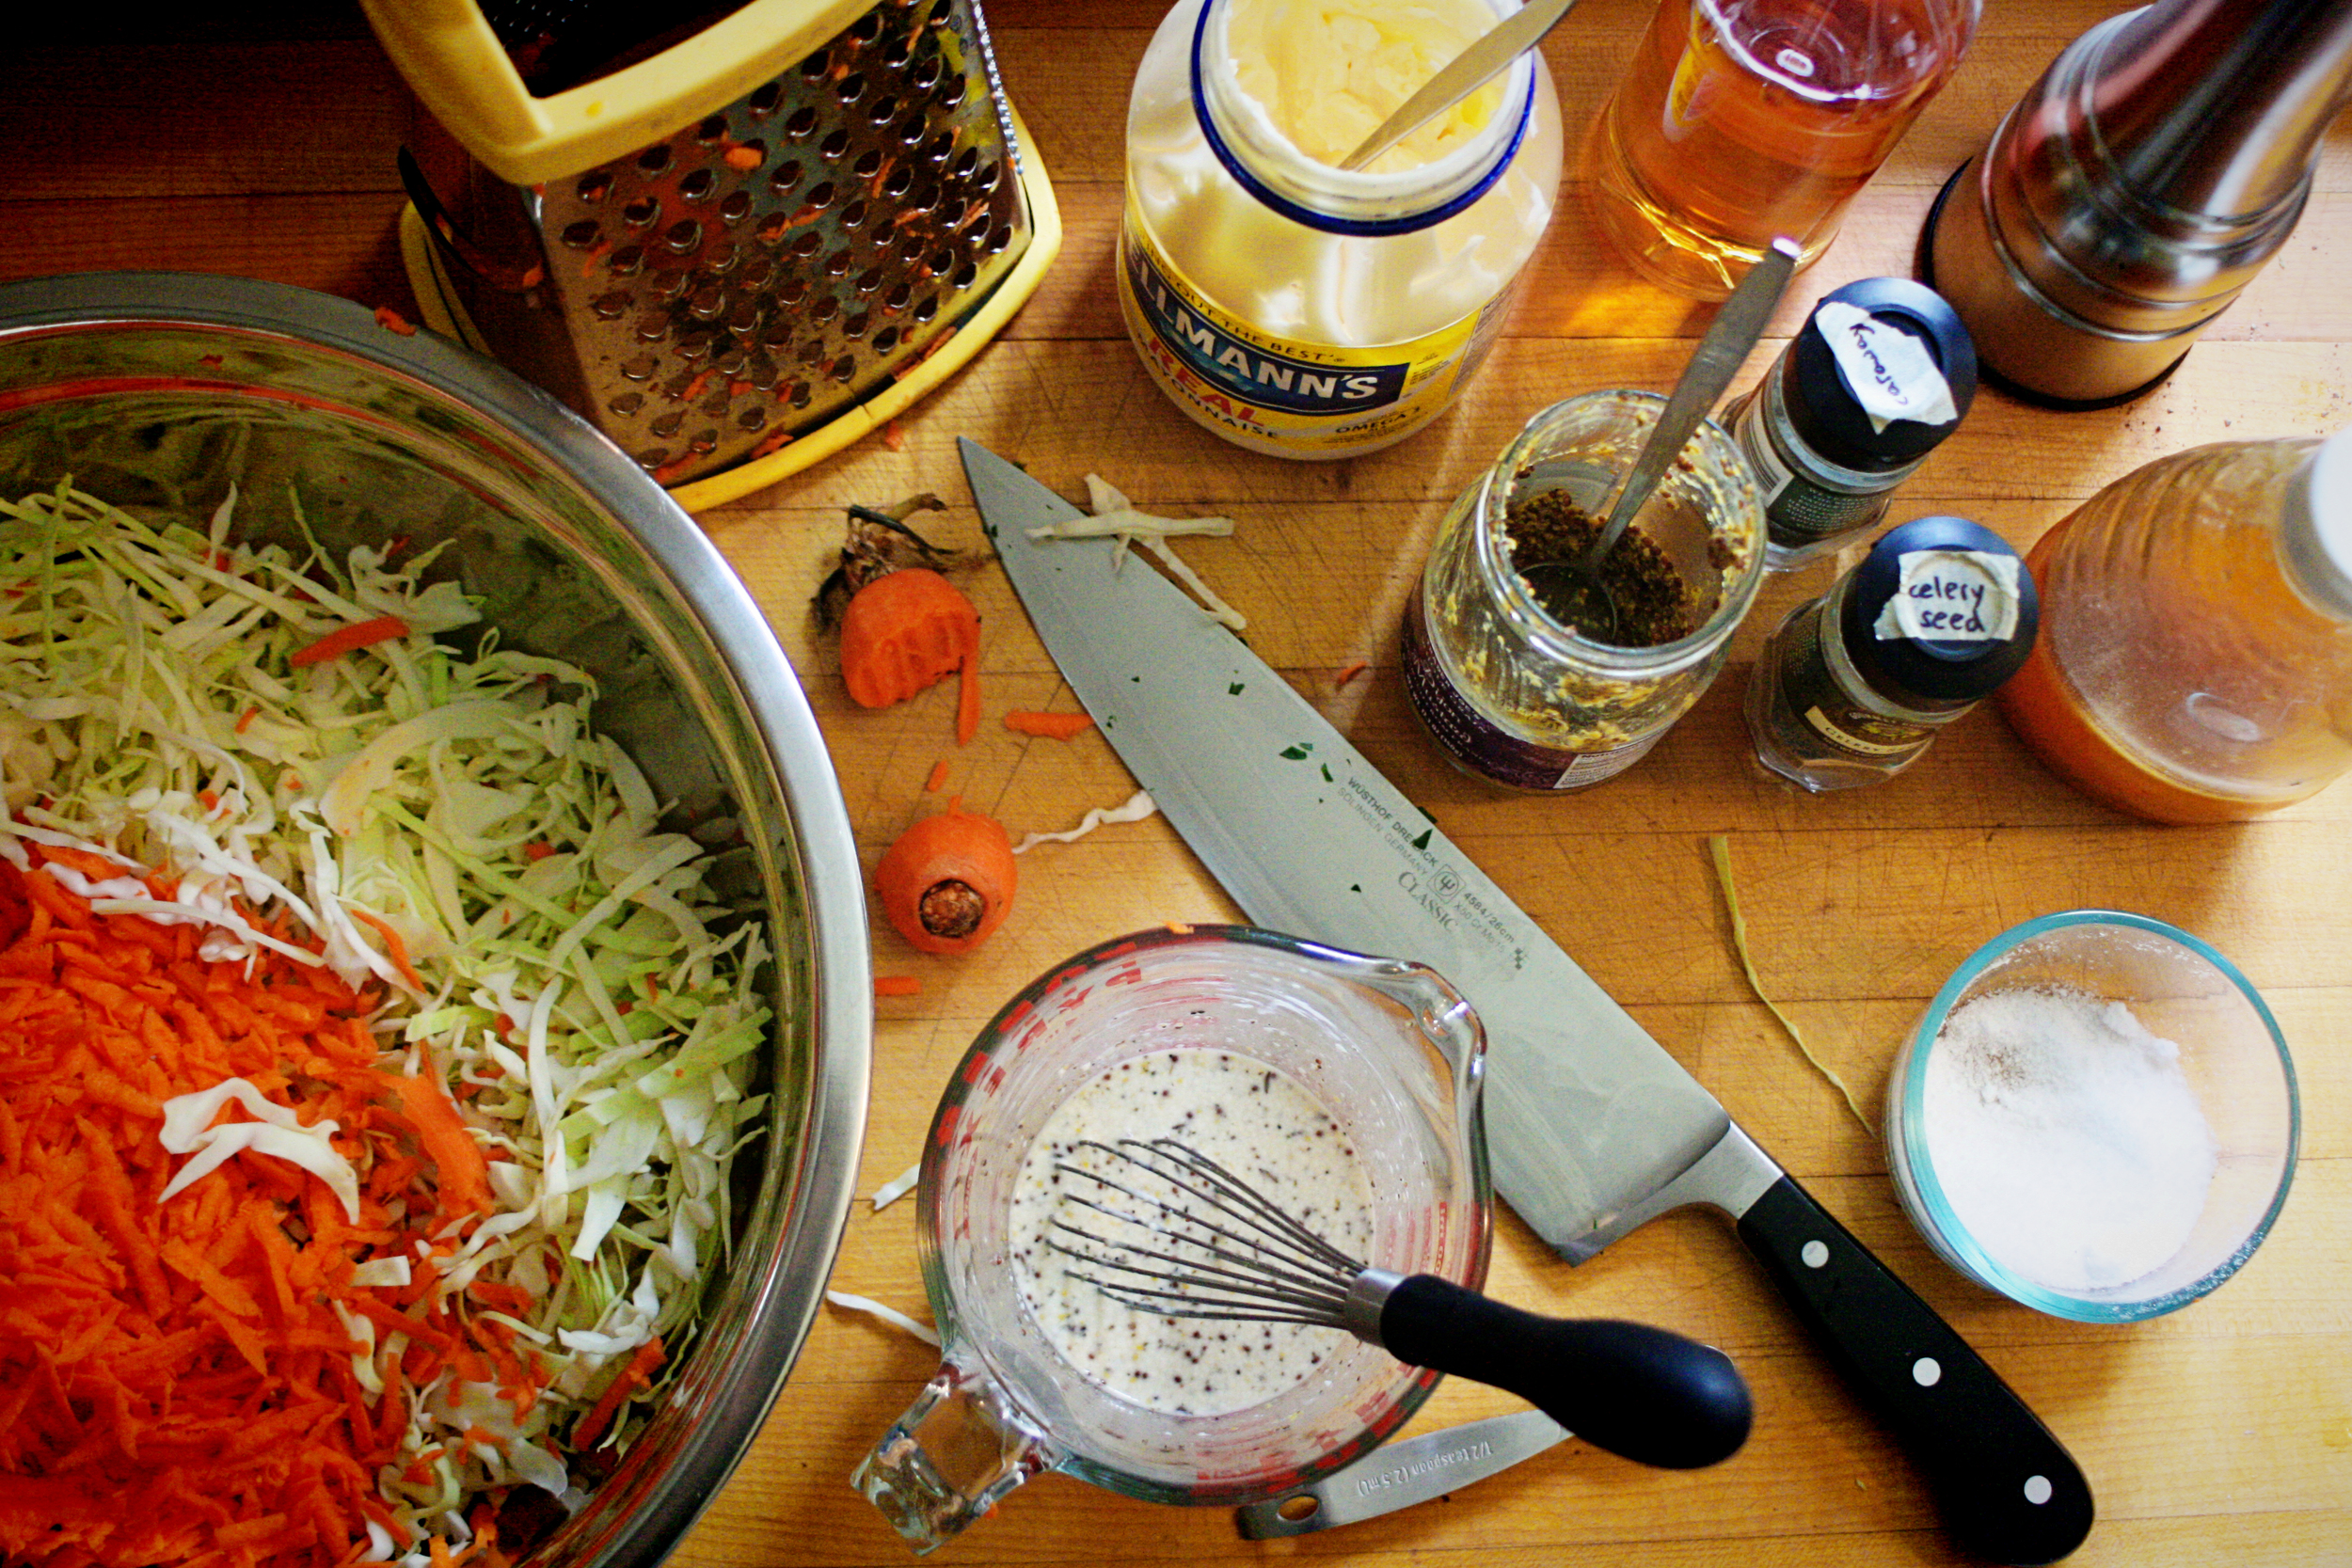 I thinly slice the cabbage (  a whole small or half a large) andshred 2 carrots on a box grater. The dressing is: 1 Tbs honey, ¼ cup   cider vinegar, 1Tbs whole grain mustard, ½ tsp celery seed, 1 tsp caraway seed, 2 Tbs mayo, and salt & pepper to taste; whisked until smooth.